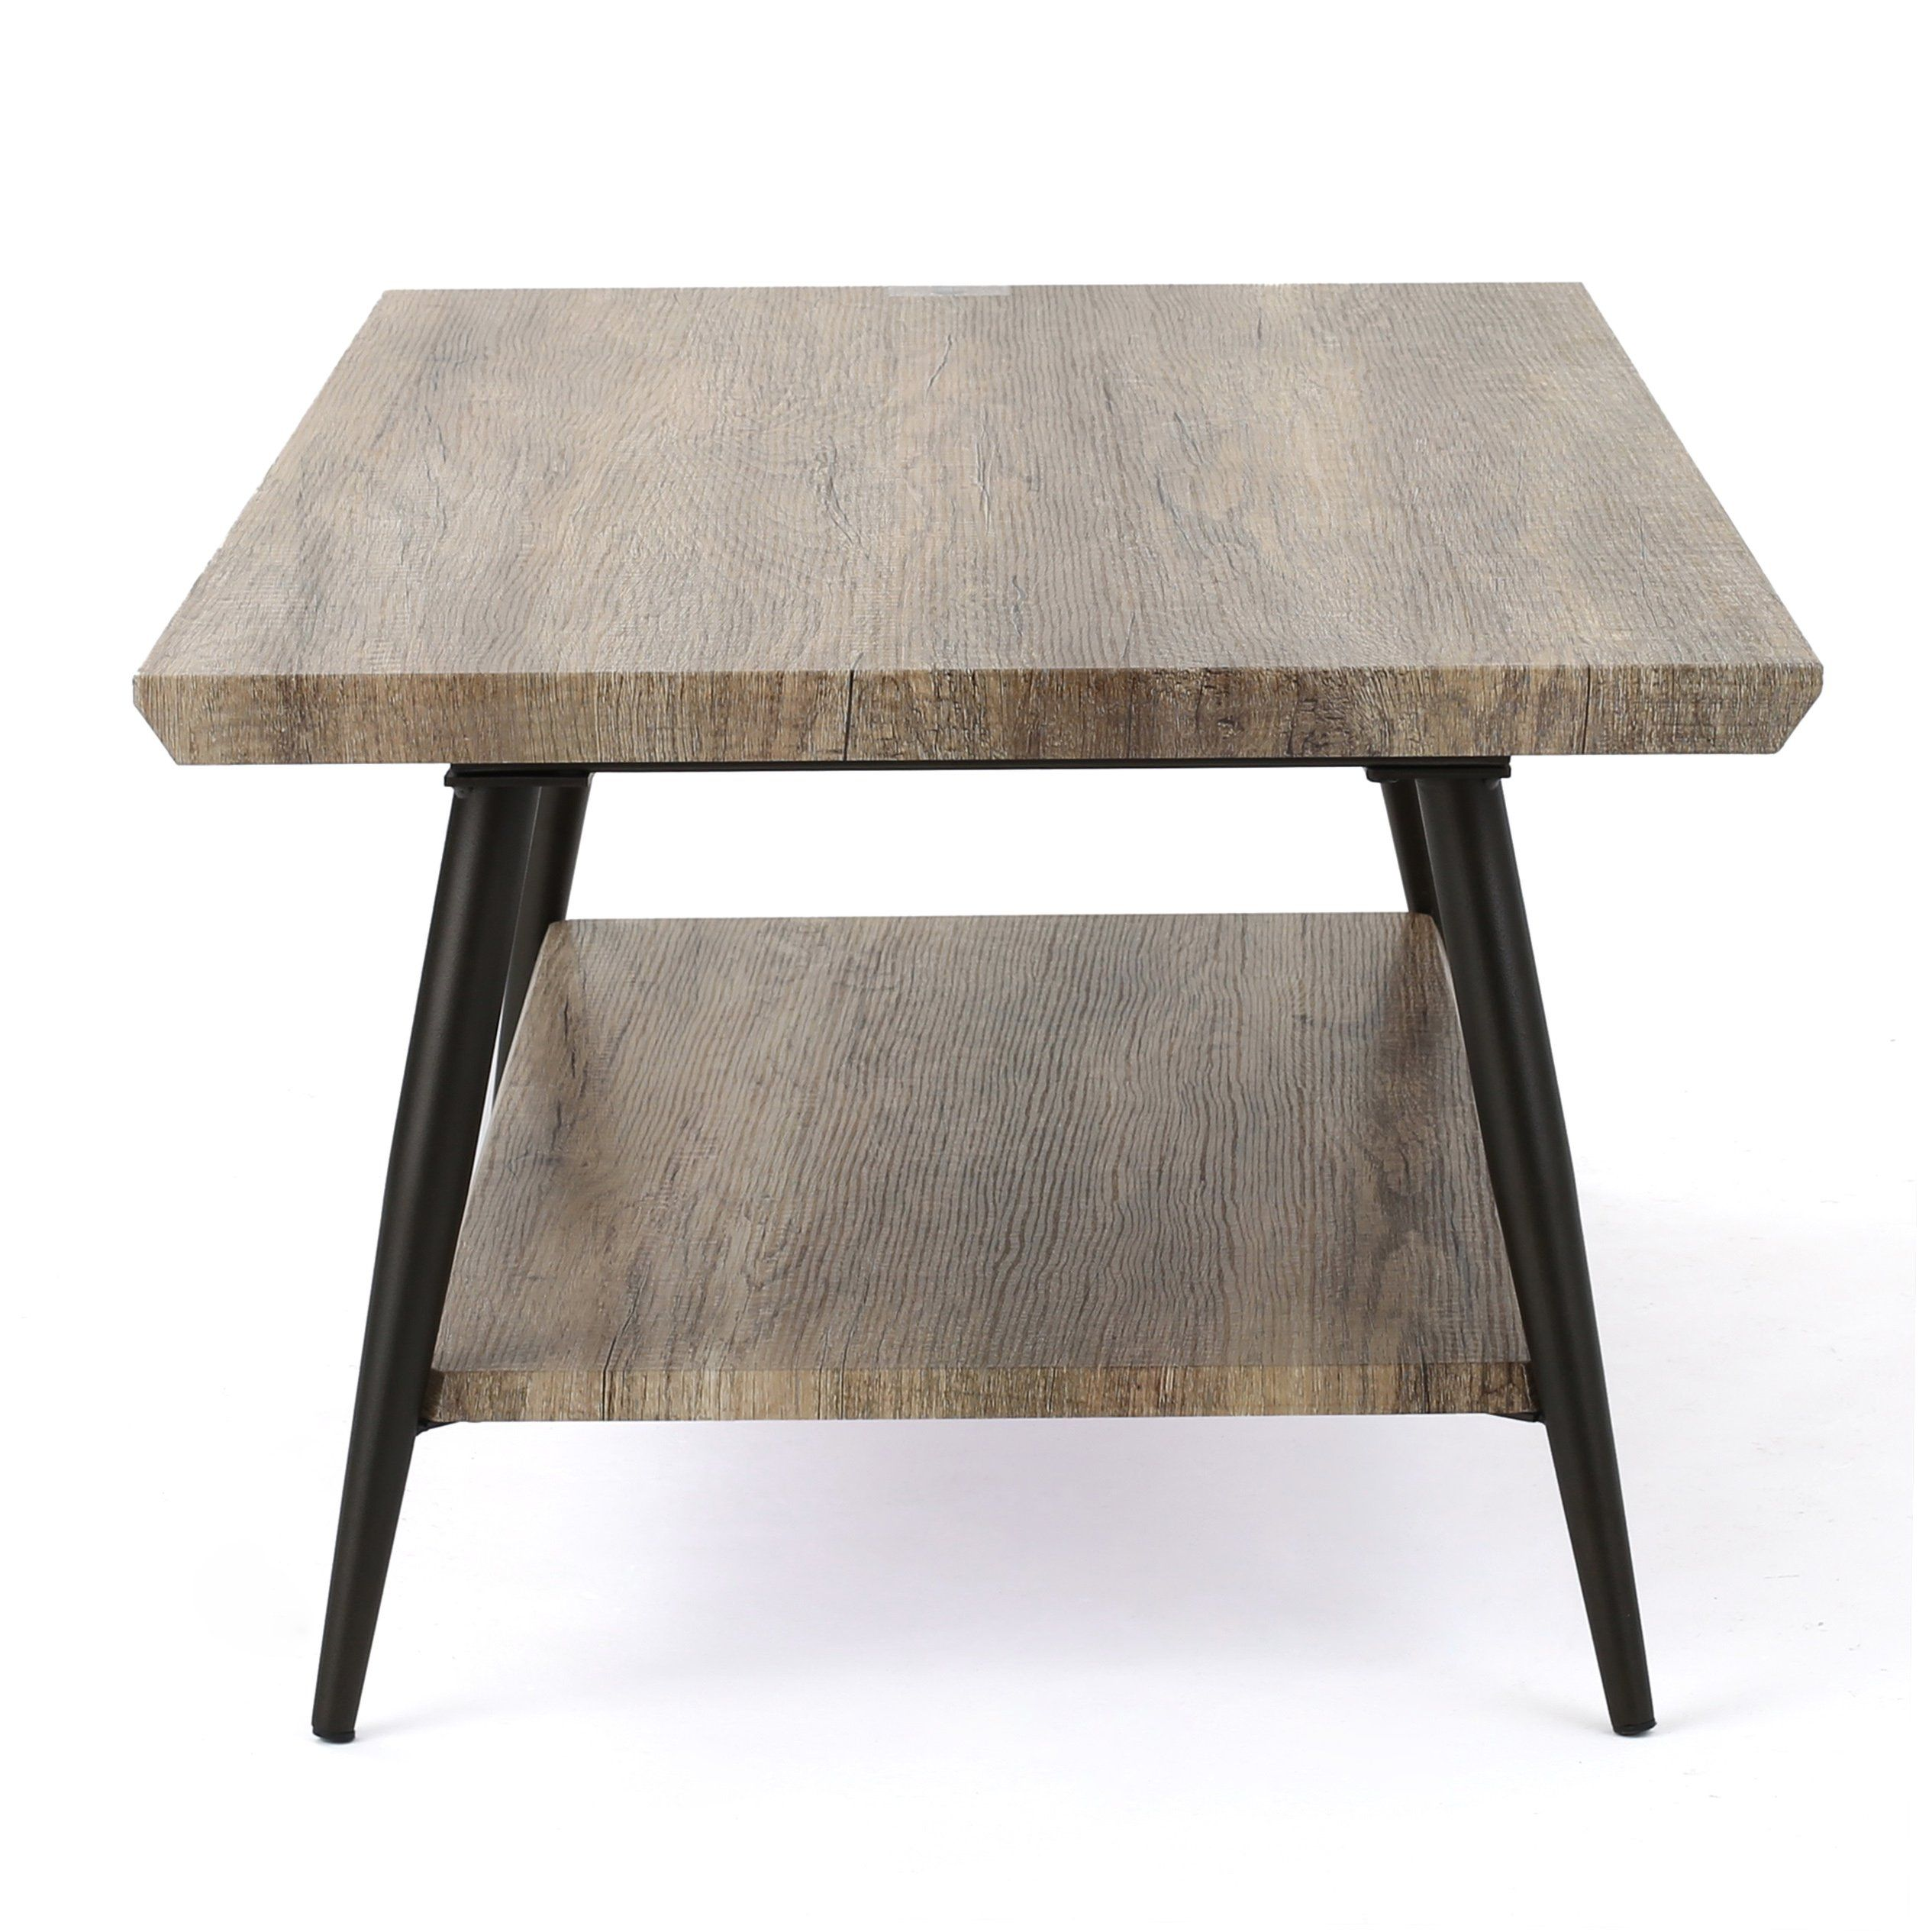 Ditmas Canyon Grey Wood Mid Century Modern Coffee Table Want Additional I Coffee Table Wood Mid Century Modern Coffee Table Mid Century Modern Coffee Table [ 2531 x 2531 Pixel ]